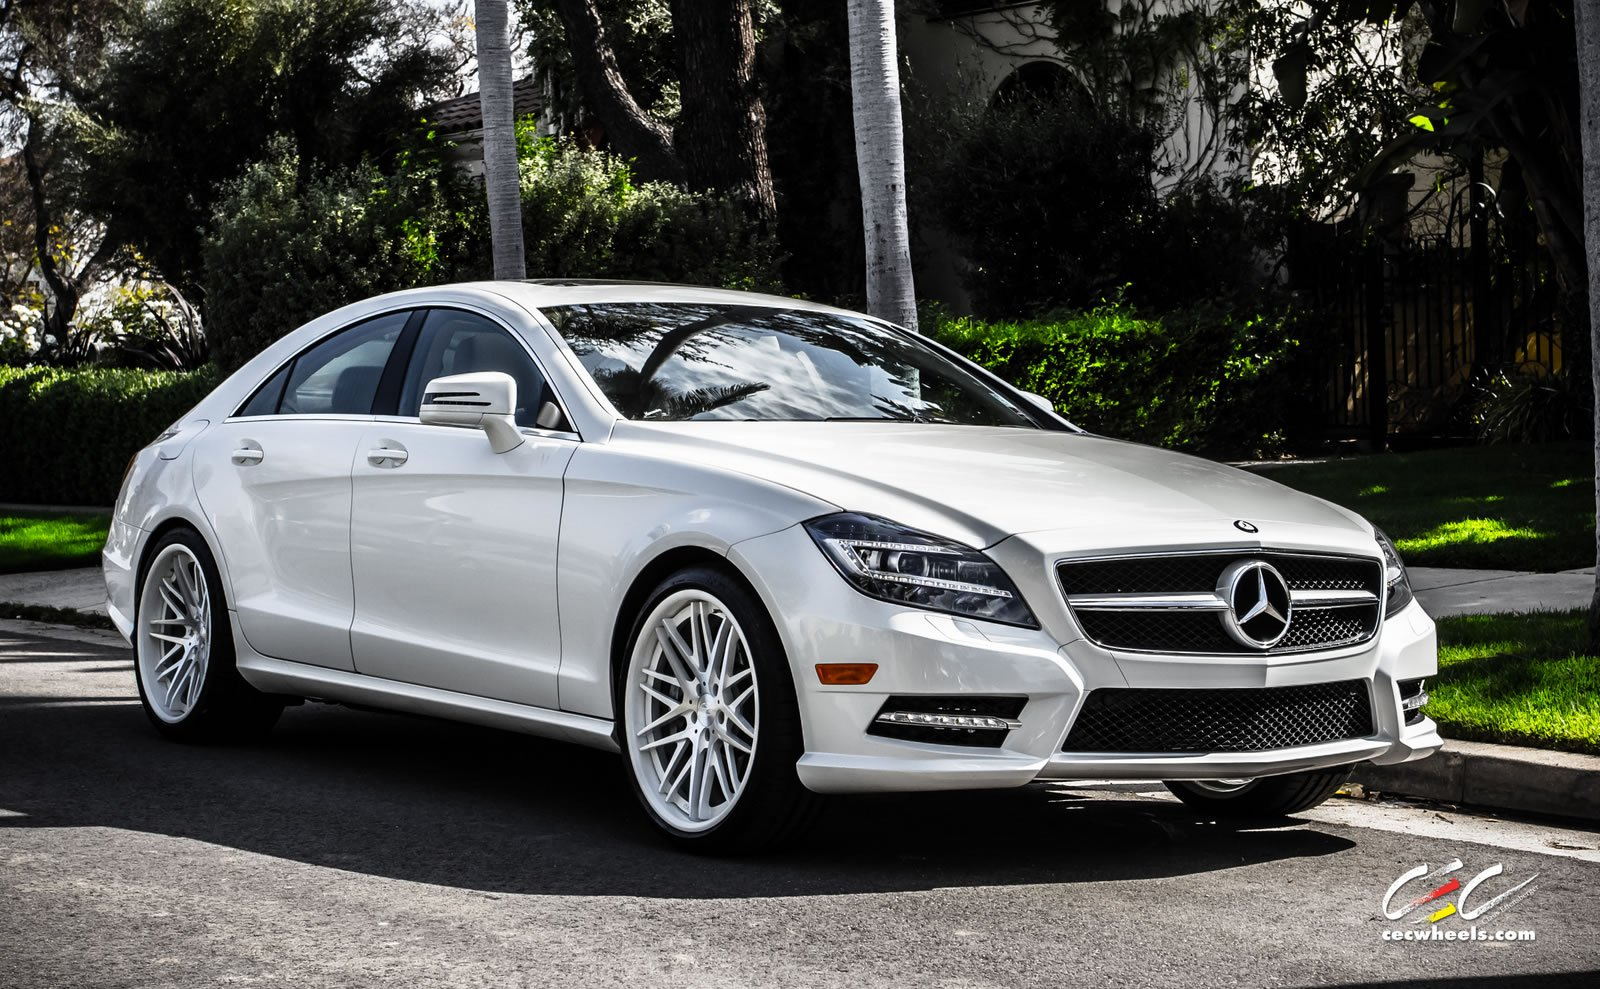 Image gallery mercedes benz cls 550 2015 for Mercedes benz cls550 for sale